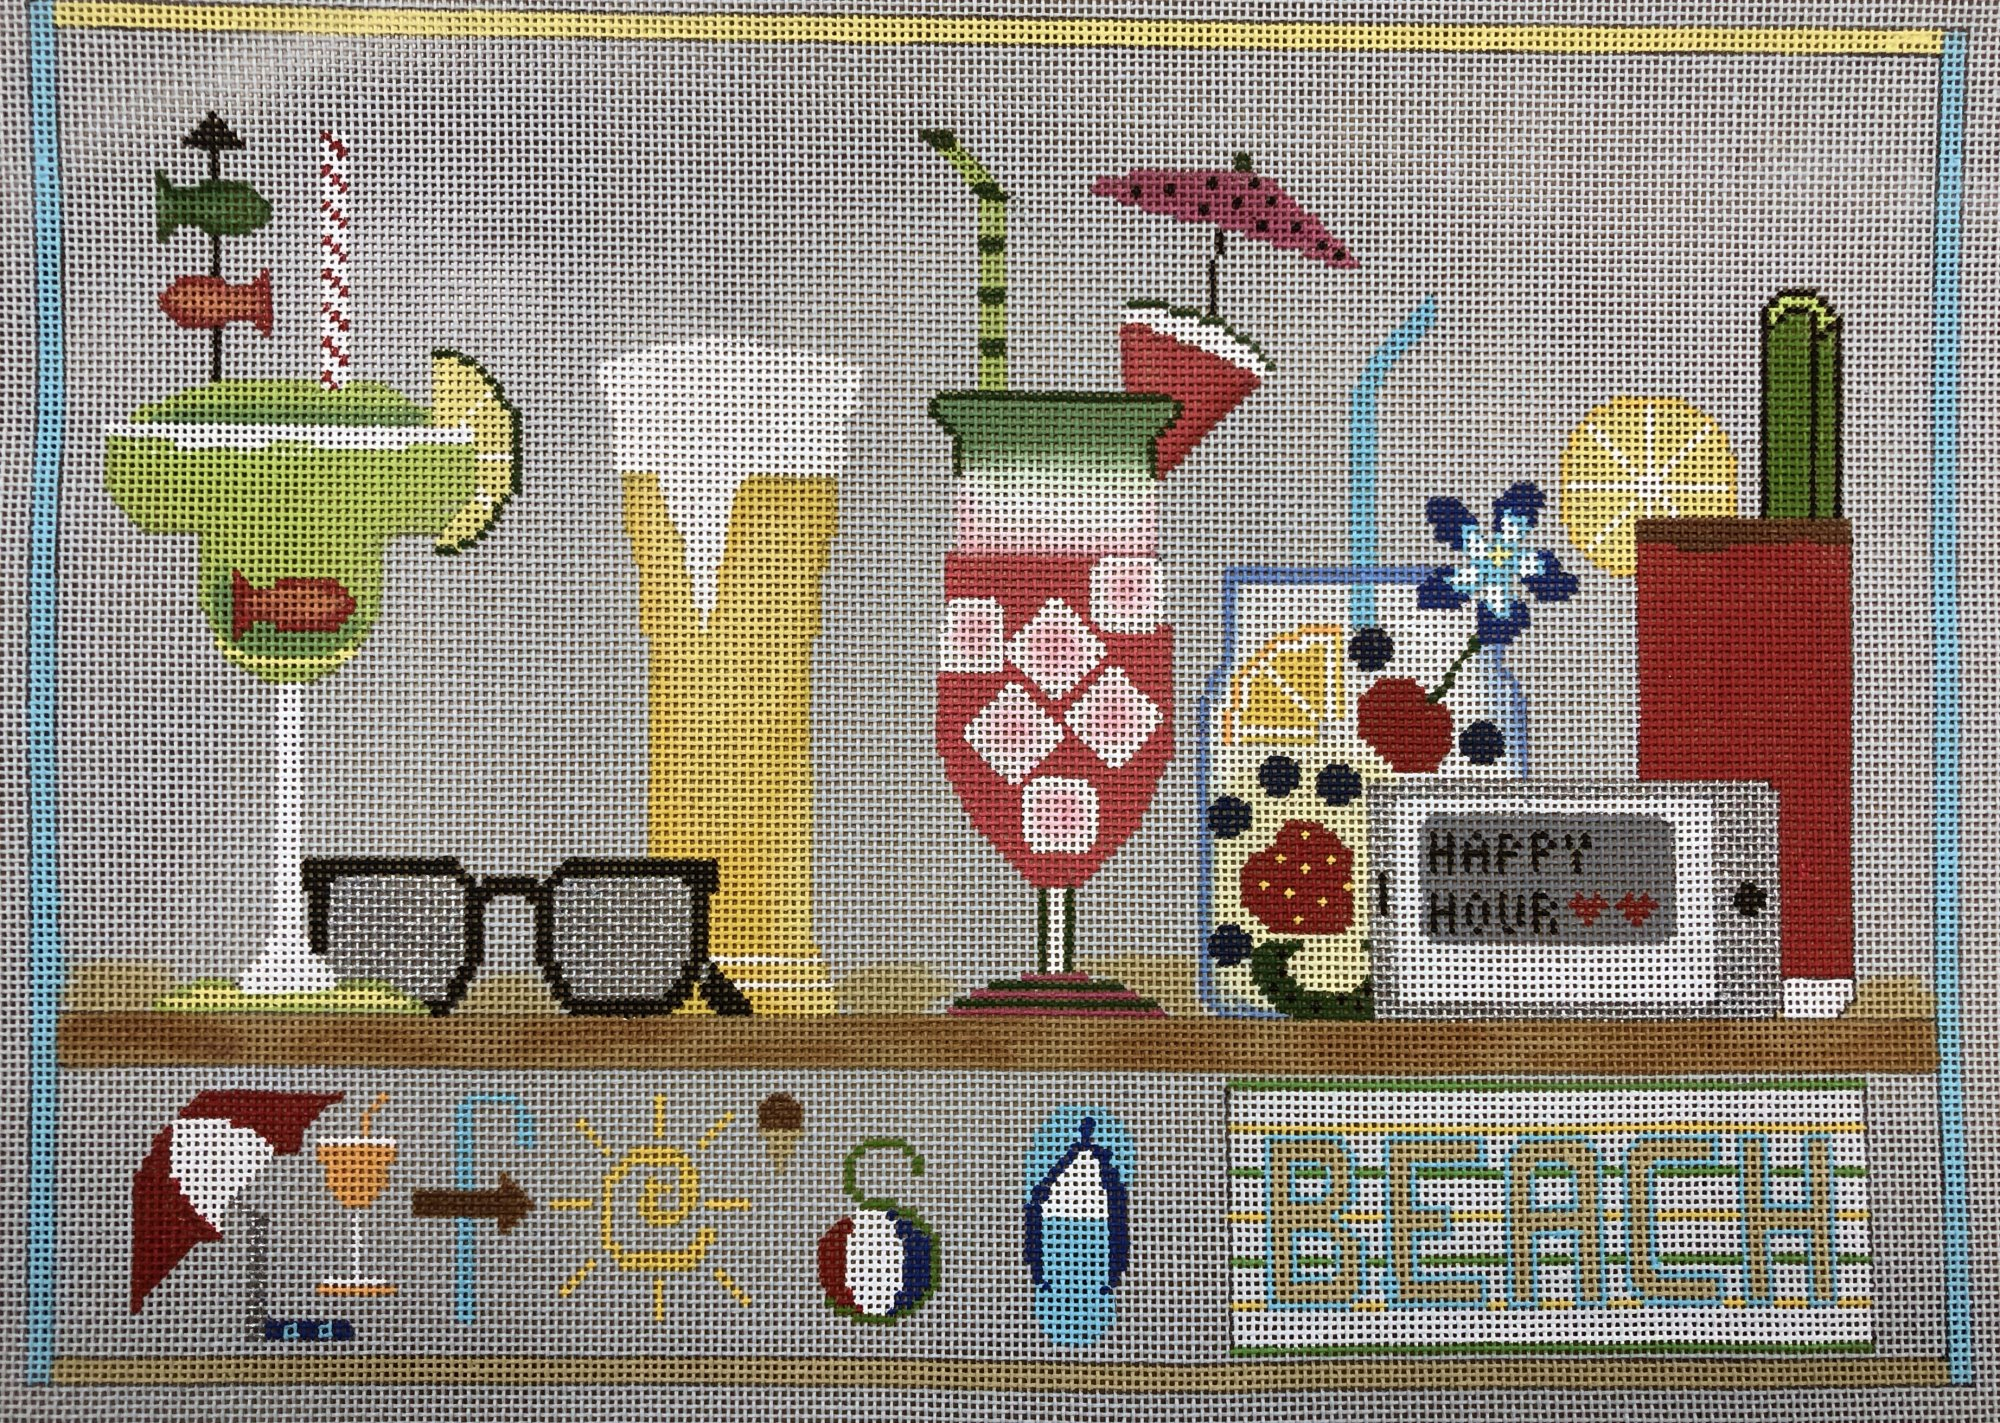 life's a beach w stitch guide & embellishment kit